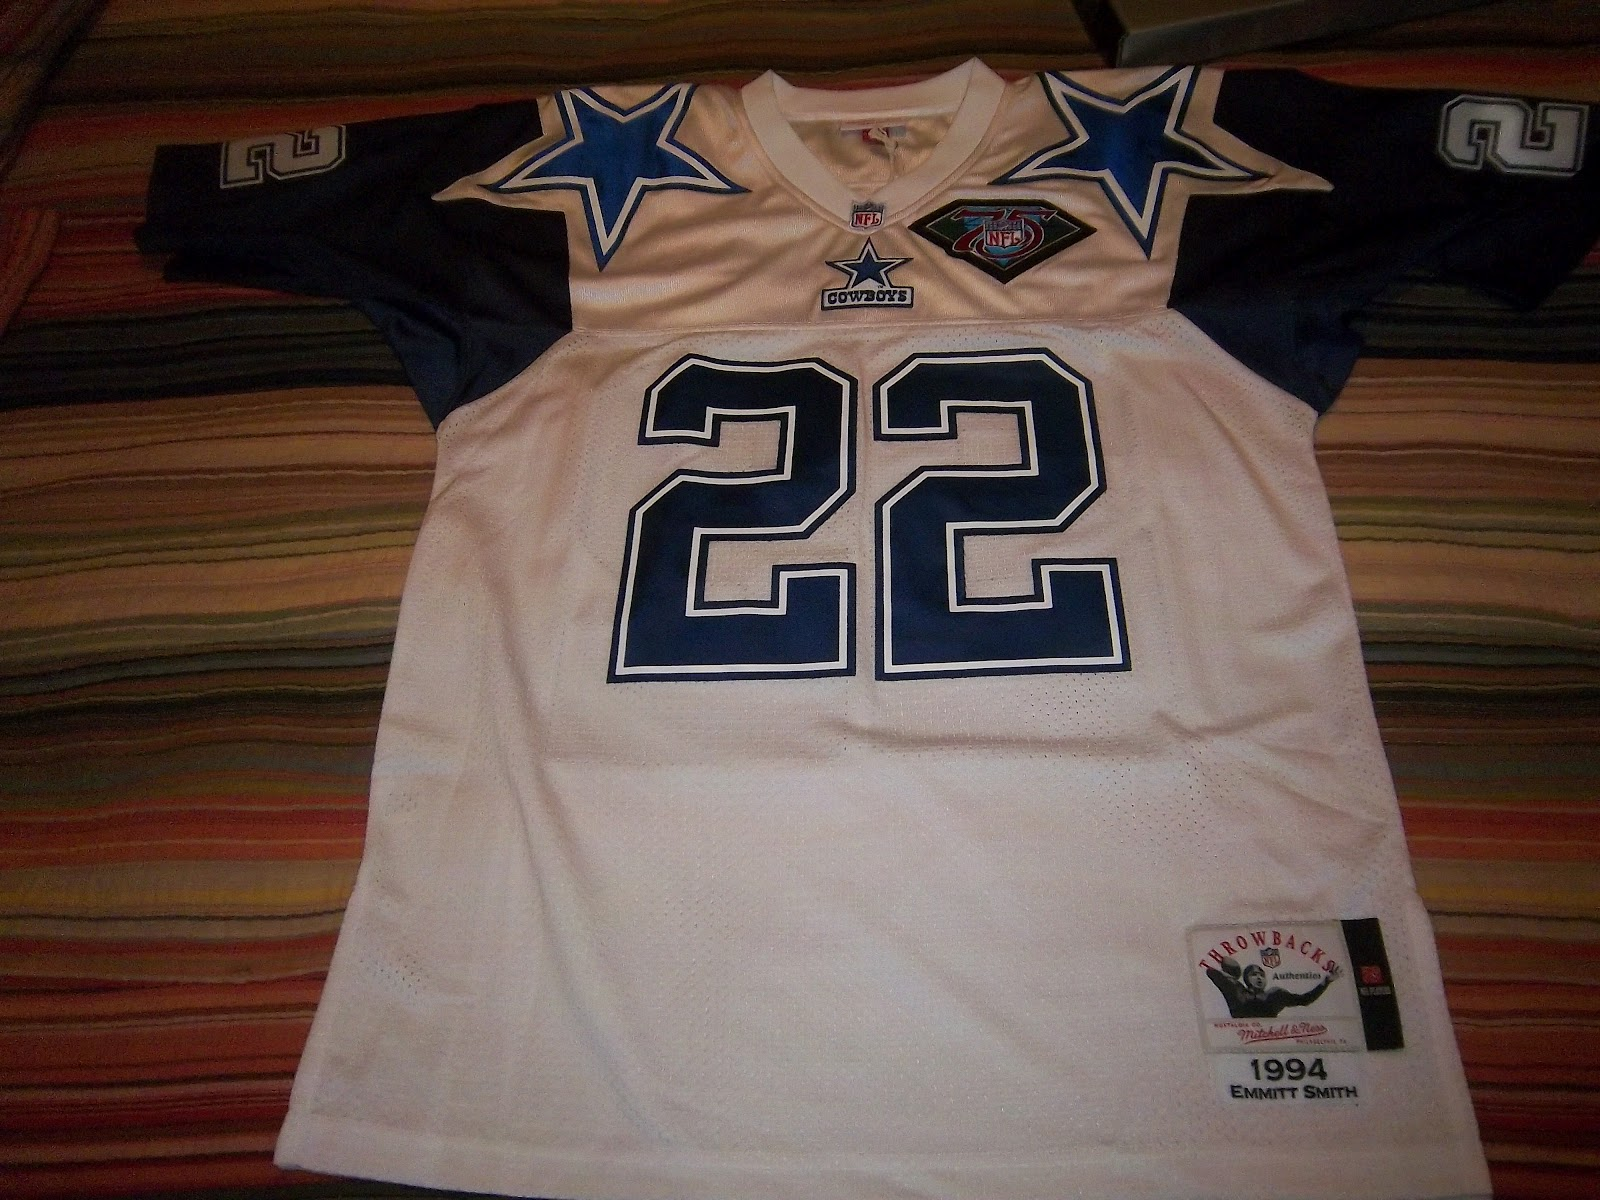 e5f027ac3 I ve always loved the double star Cowboys Jersey and this is a great piece  of my favorite Cowboy of all time. It s also limited edition   to 22 with  mine ...